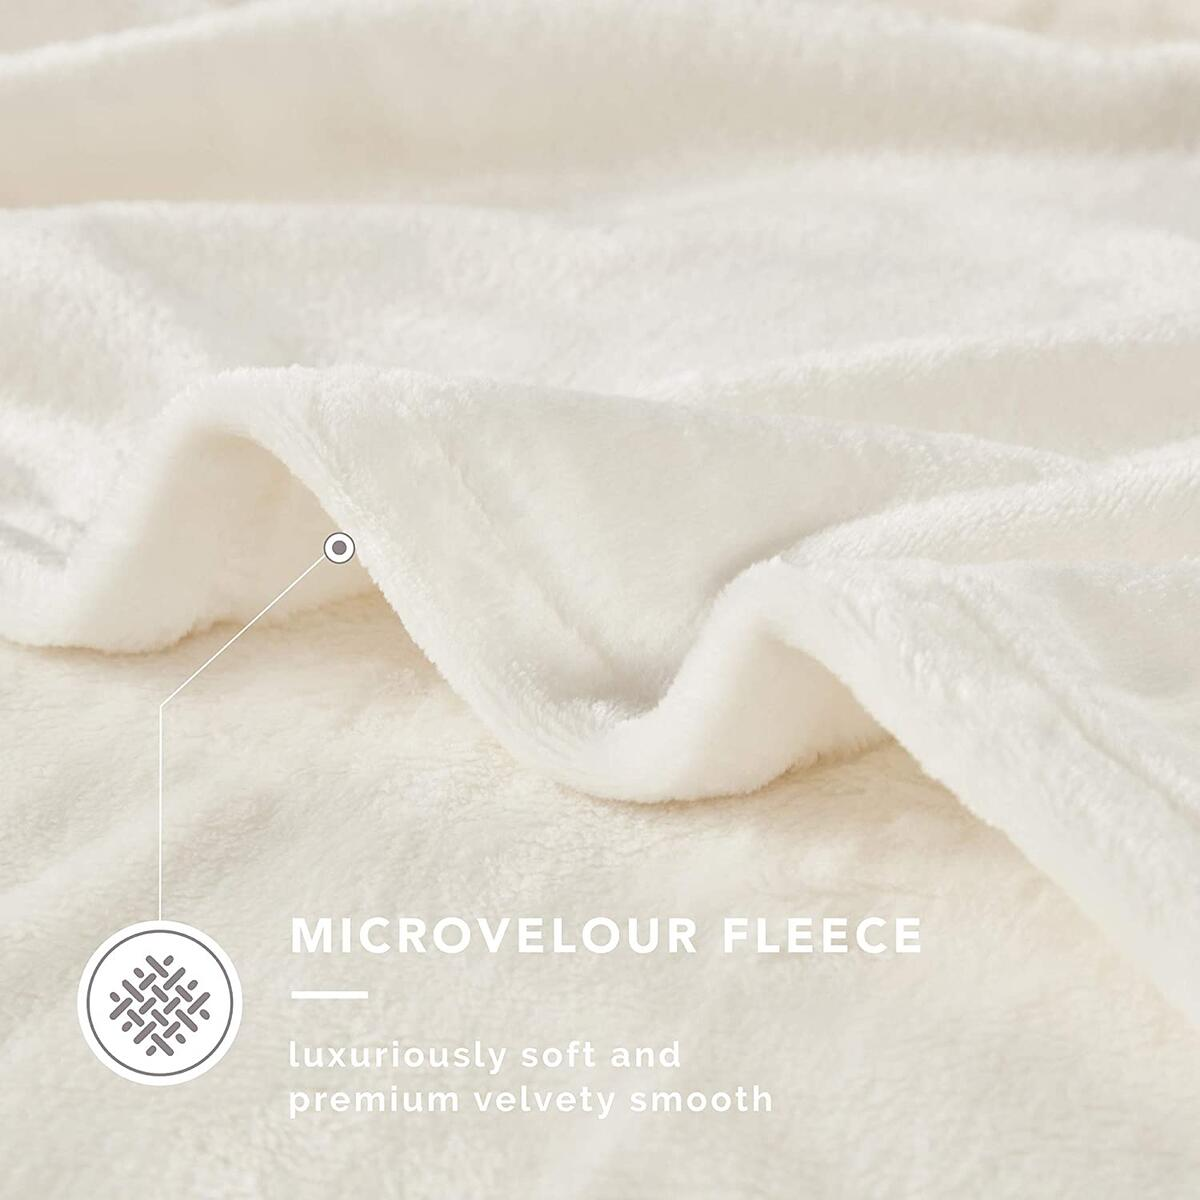 108x90 KING Size Any Color DEGREES OF COMFORT Fleece King Size Blankets for Bed - MicroVelour Velvet Plush | Silky Soft & Lightweight | Use on Couch, Bed or Camping | 4 Sizes, 10 Colors Available Throw Blanket, 108x90 KING Size Any Color